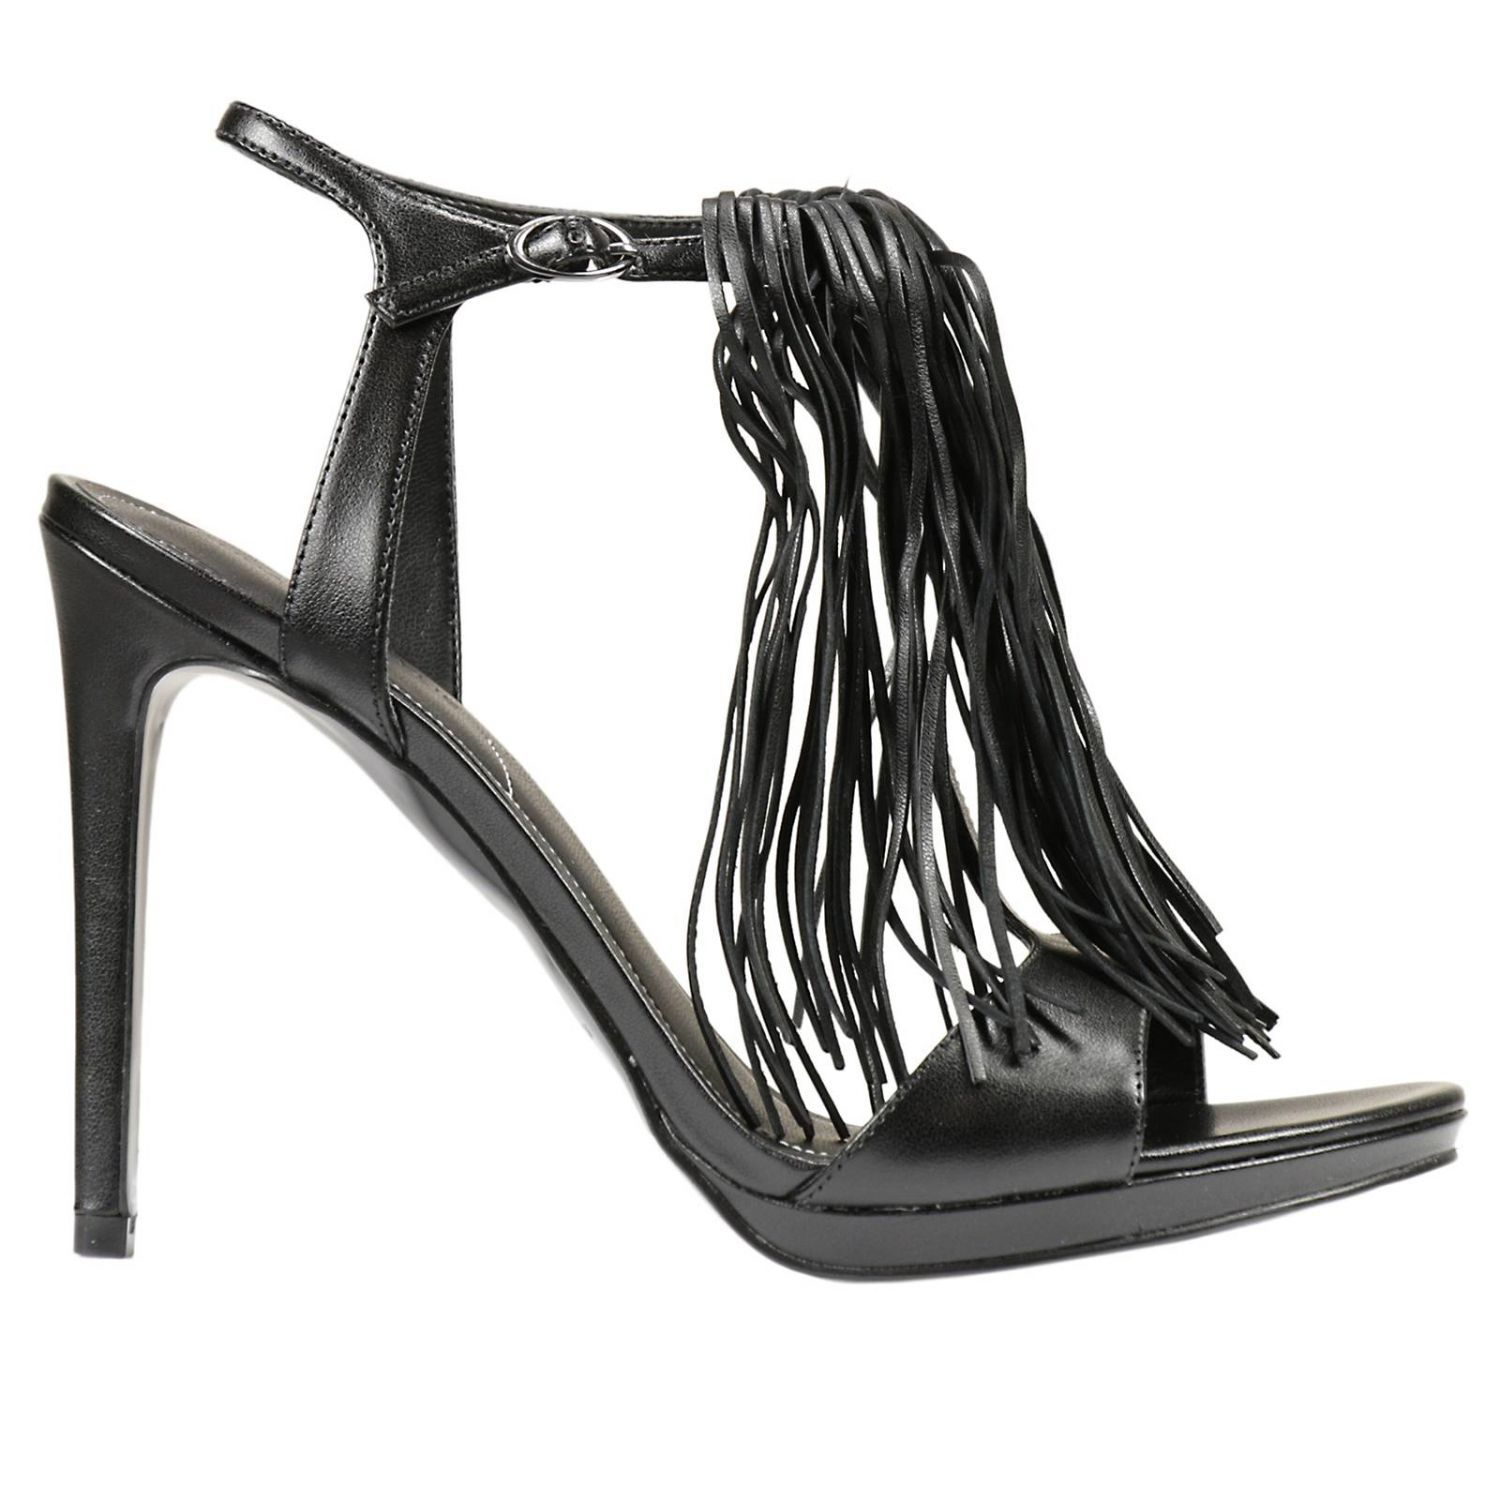 Kendall + Kylie Heeled Sandals